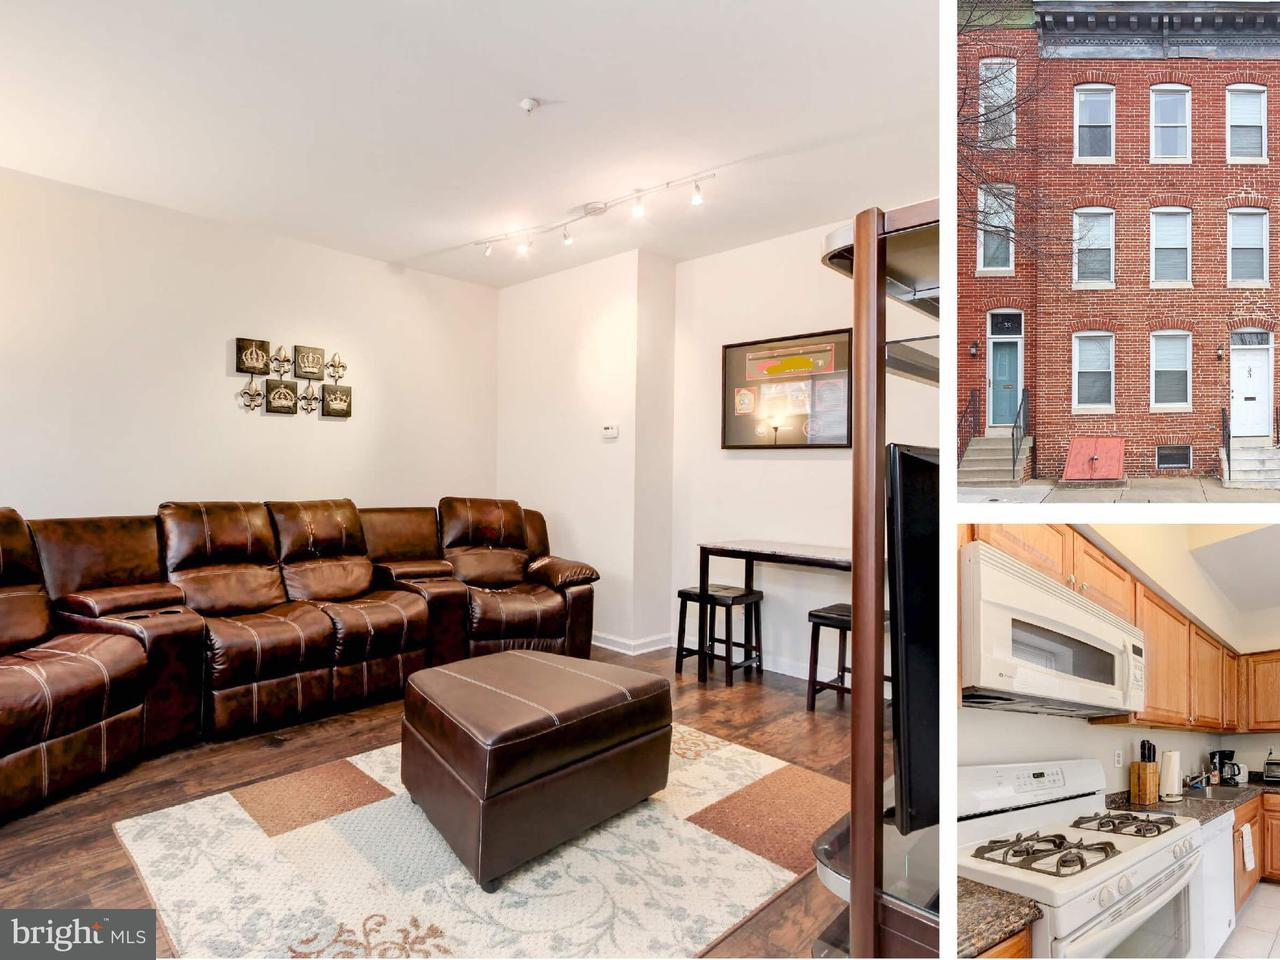 Single Family for Sale at 33 Eden St Baltimore, Maryland 21231 United States